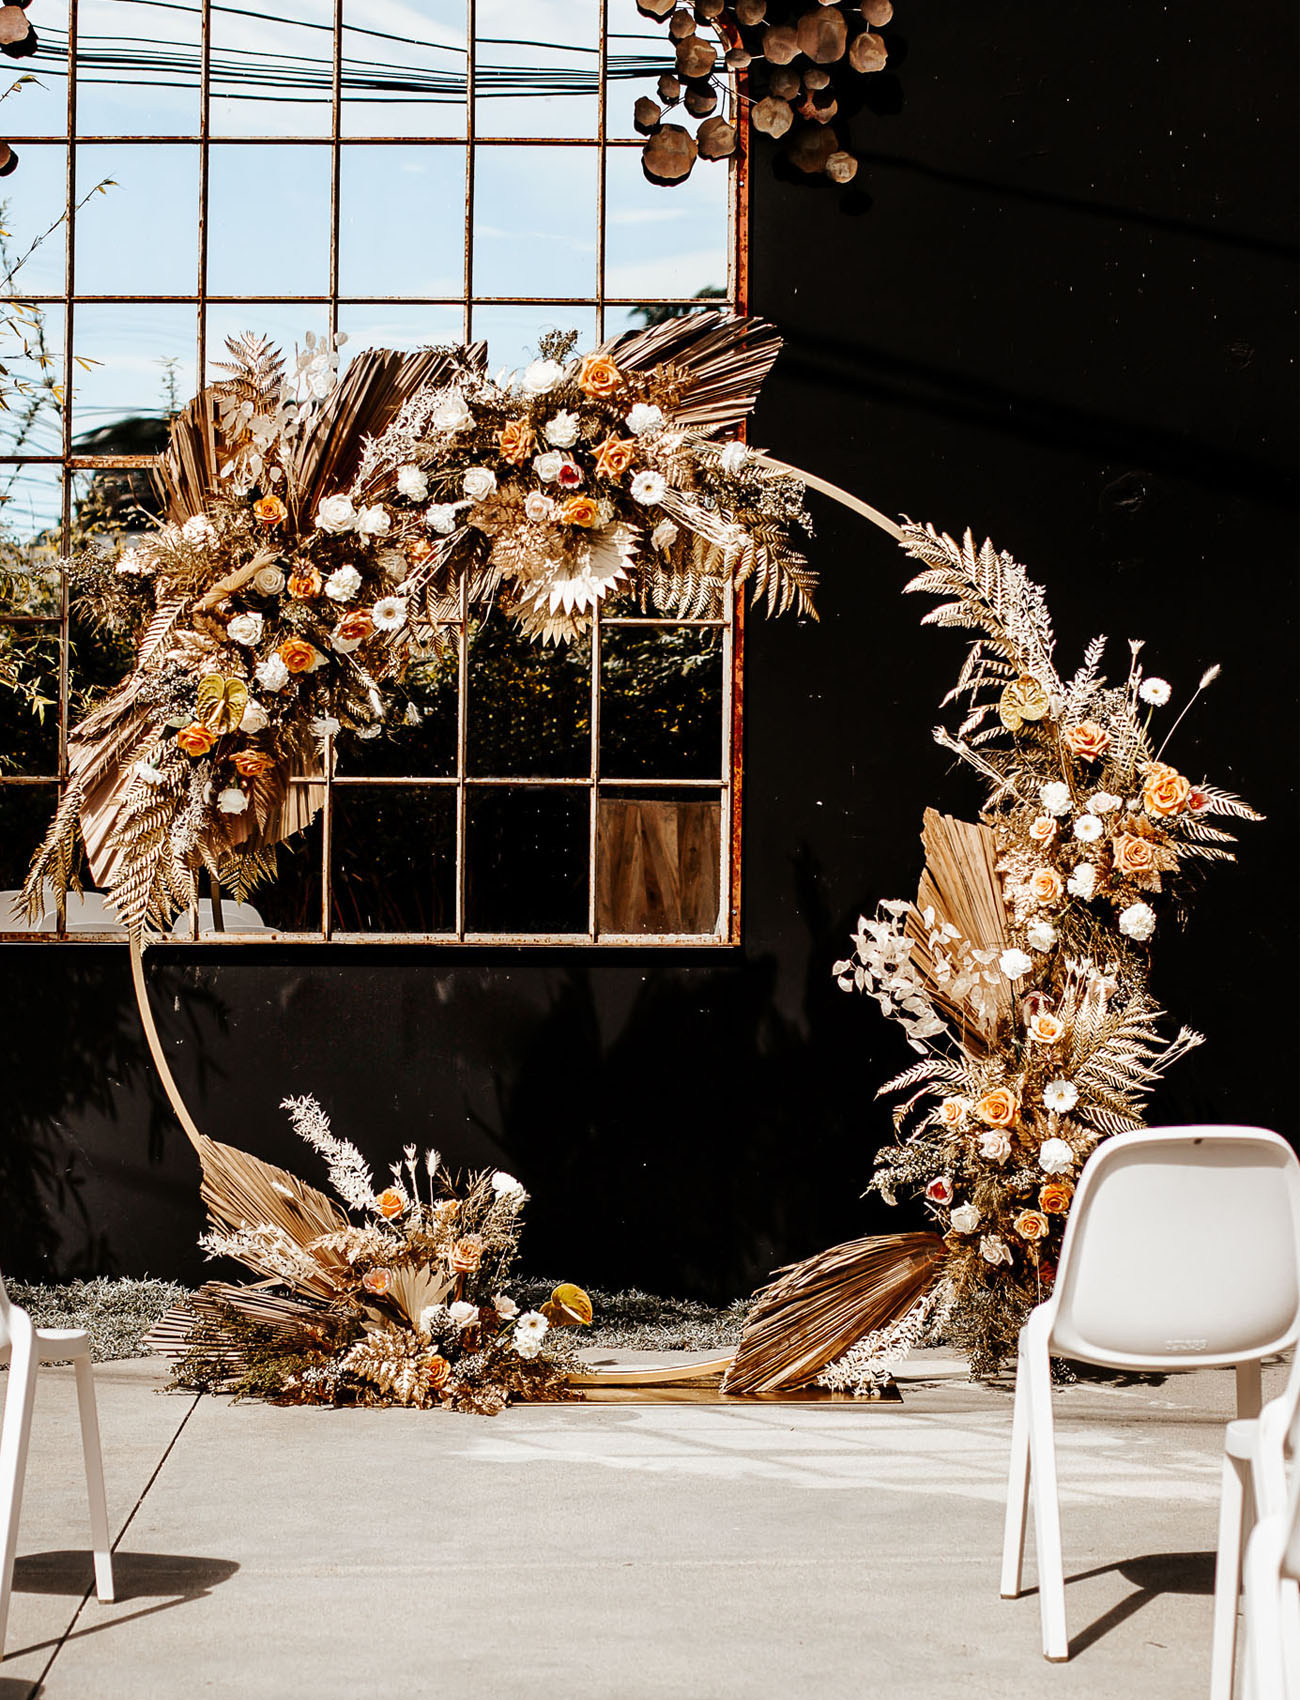 The wedding arch was an incredible one, with peachy blooms, fronds, herbs and leaves